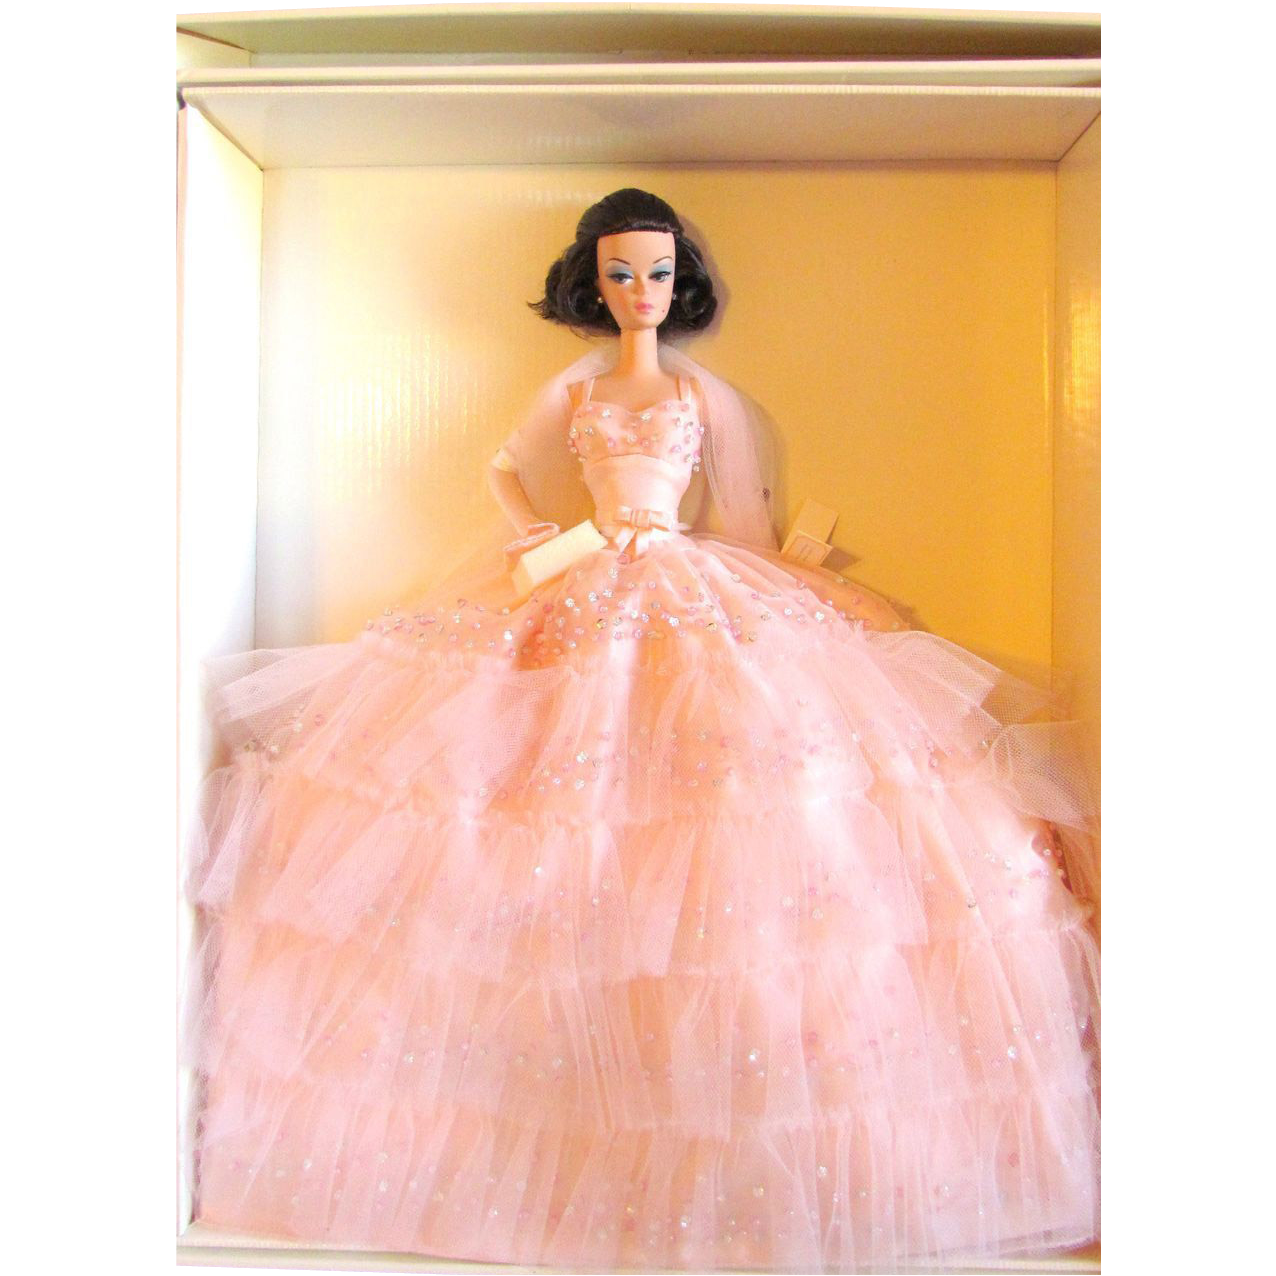 barbie pictures latest collection